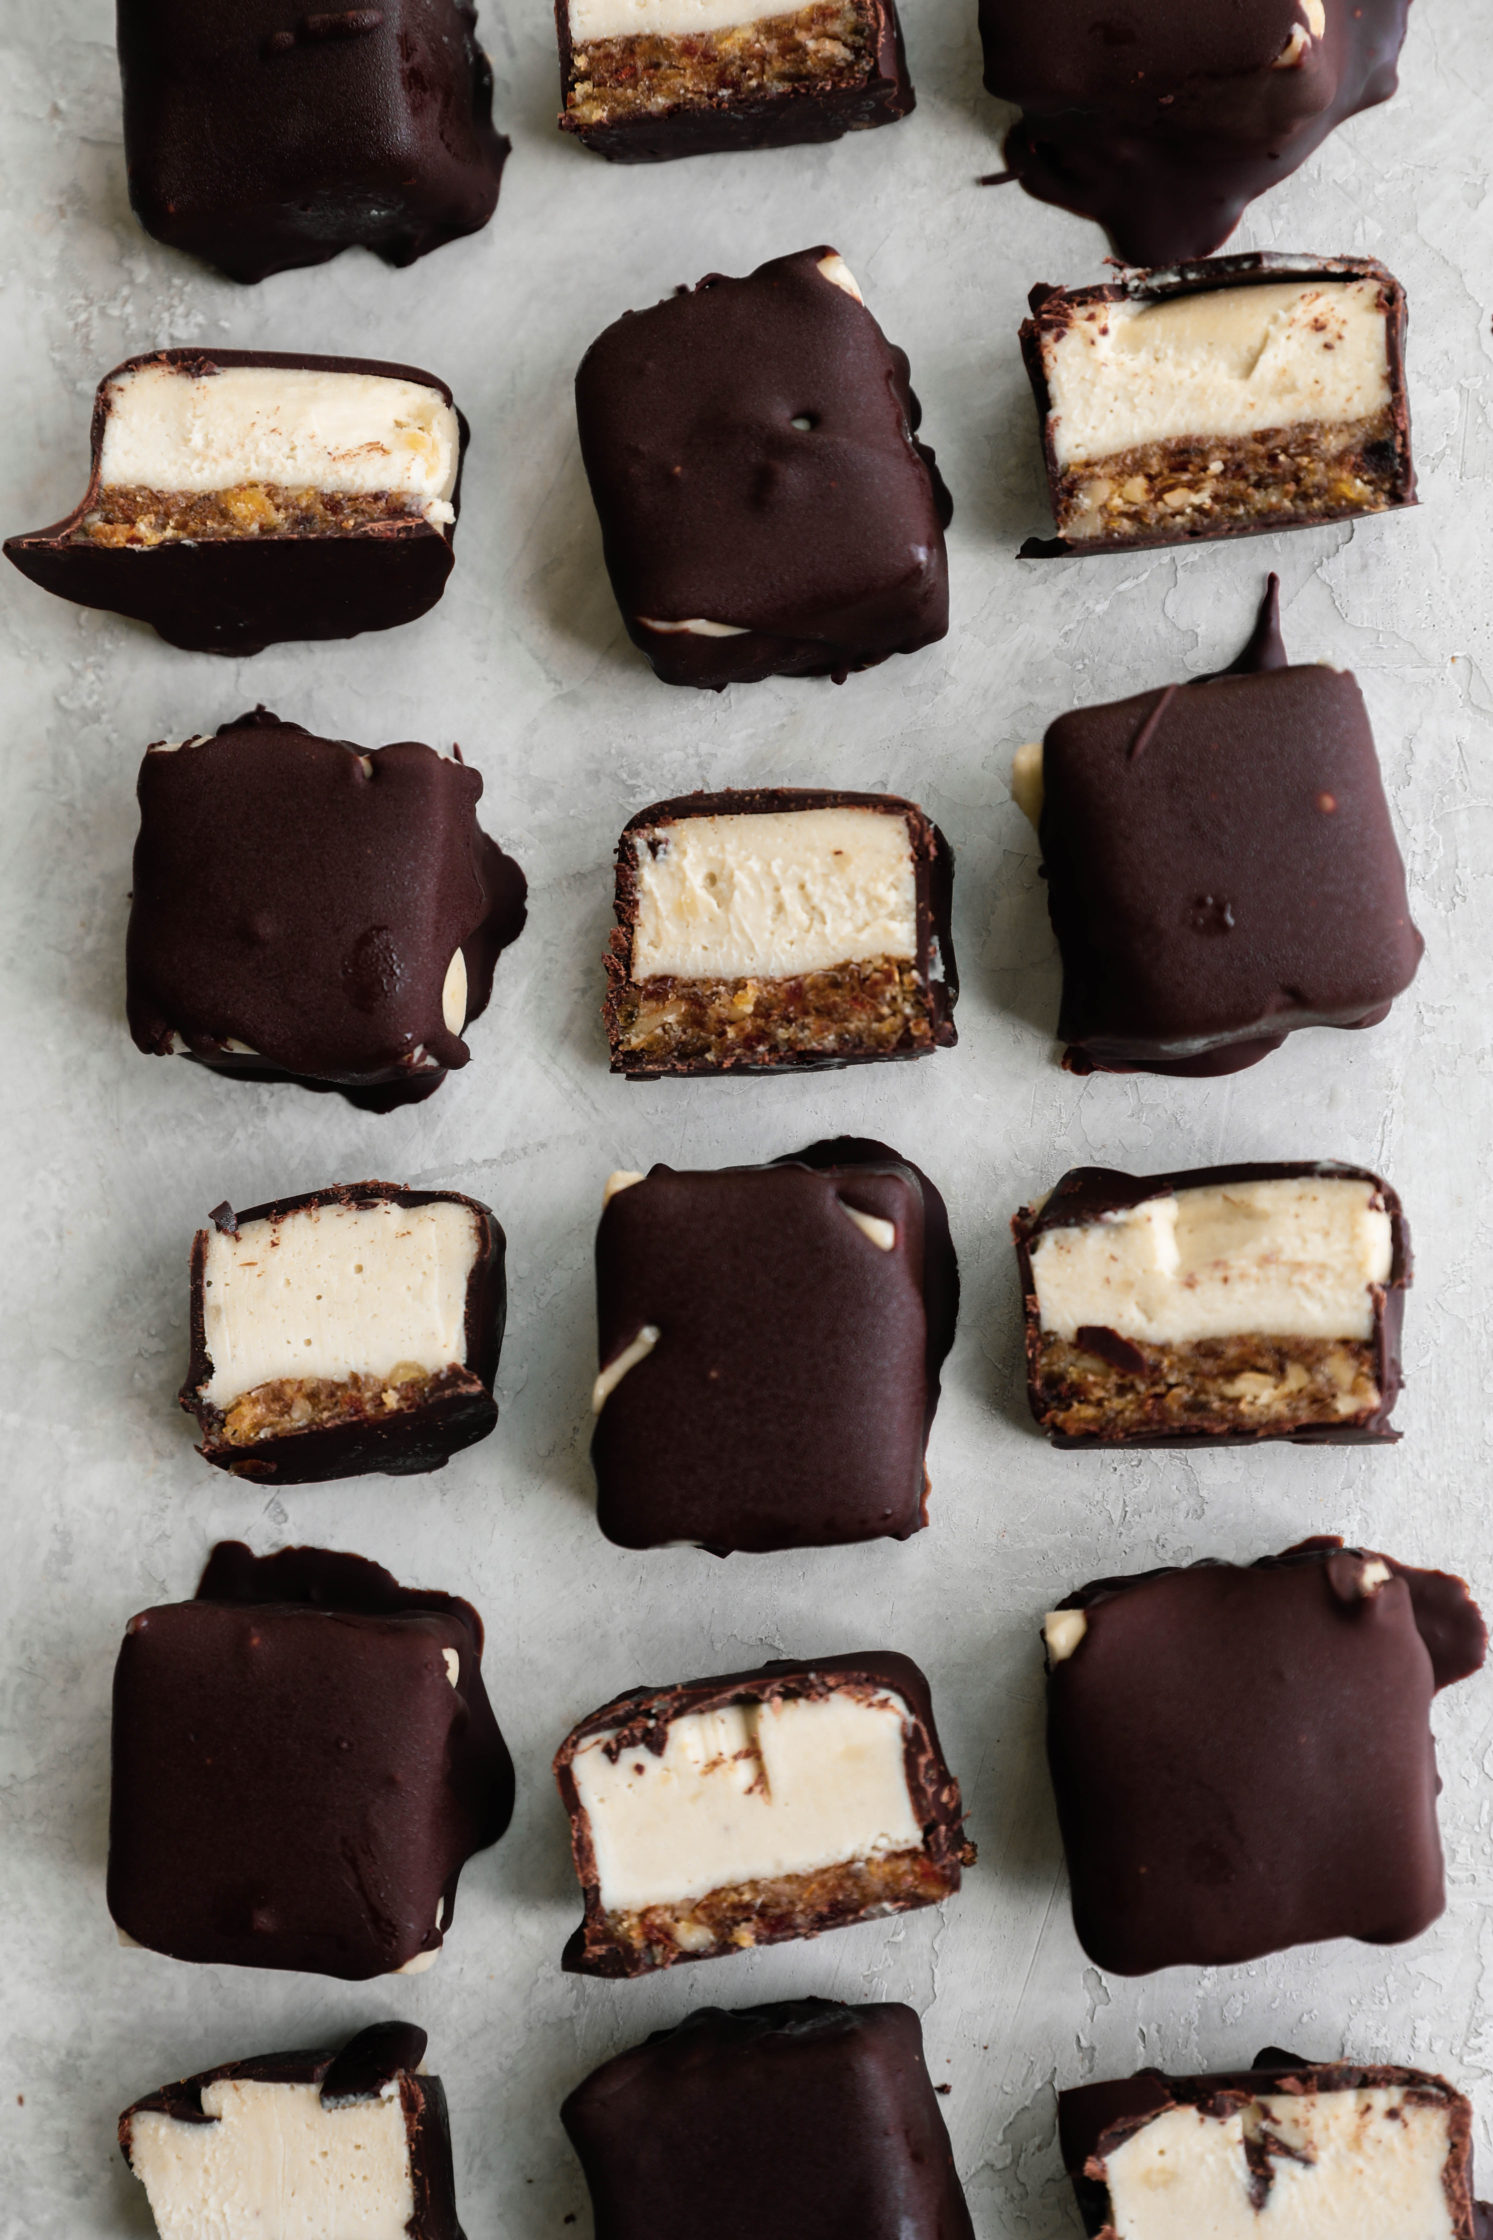 Chocolate Dipped Cashew Cheesecake Bites by Flora & Vino